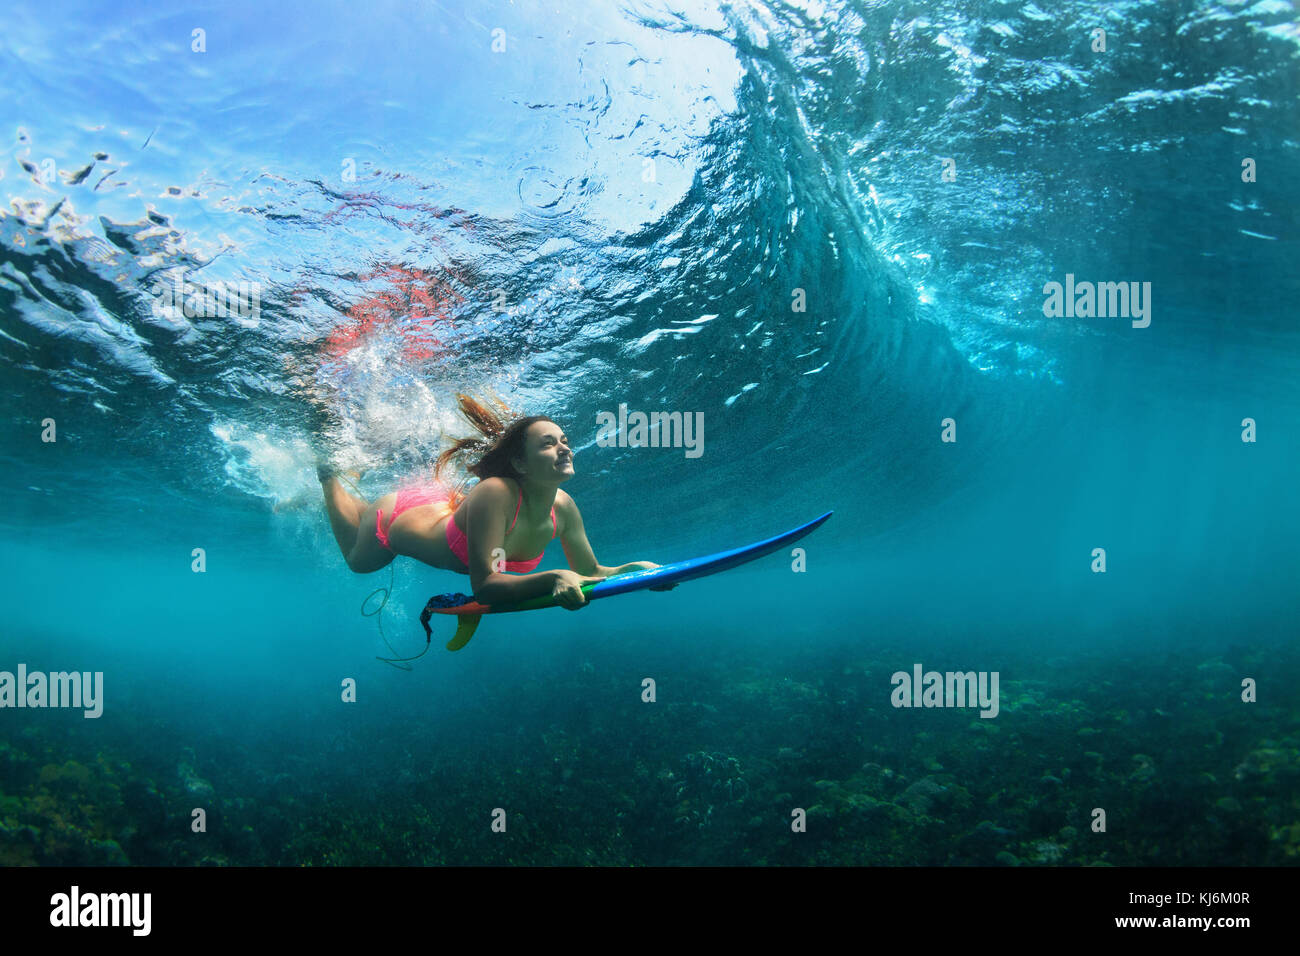 Active girl in bikini in action. Surfer woman with surf board dive underwater under breaking big wave. Teenage lifestyle. - Stock Image